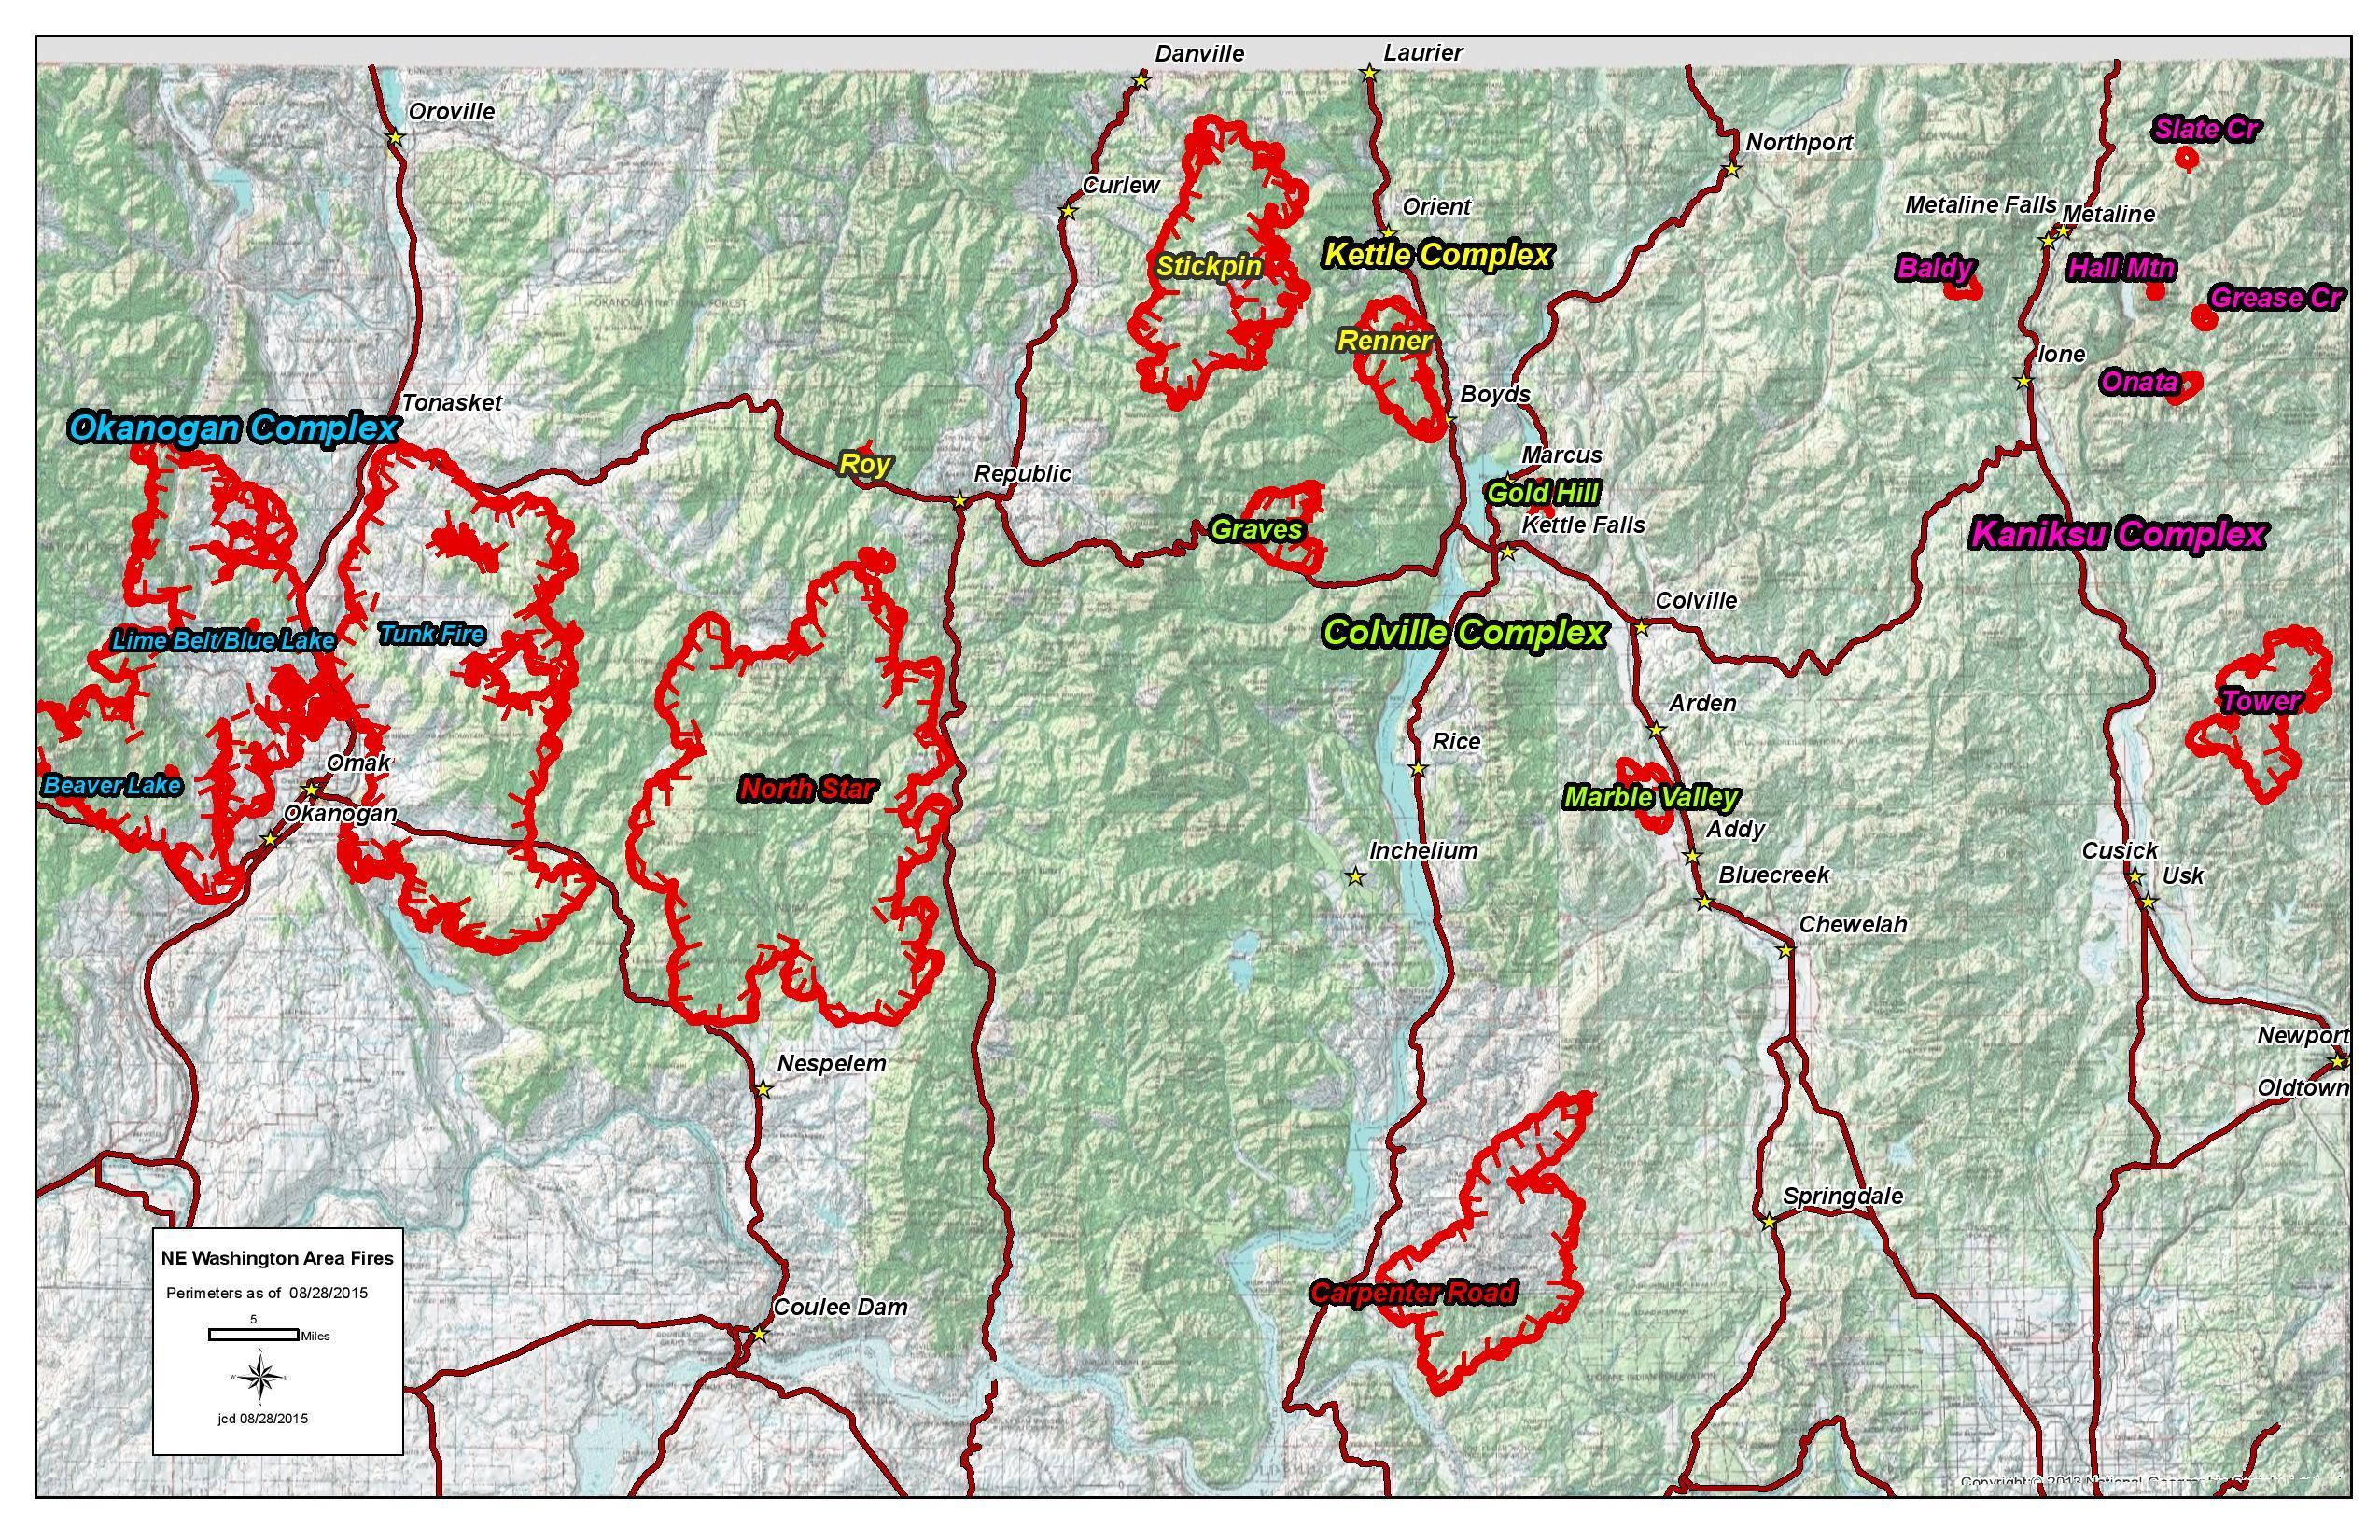 Map Of Ne Washington Area Fires 8 28 Kettle Complex Wa Fire